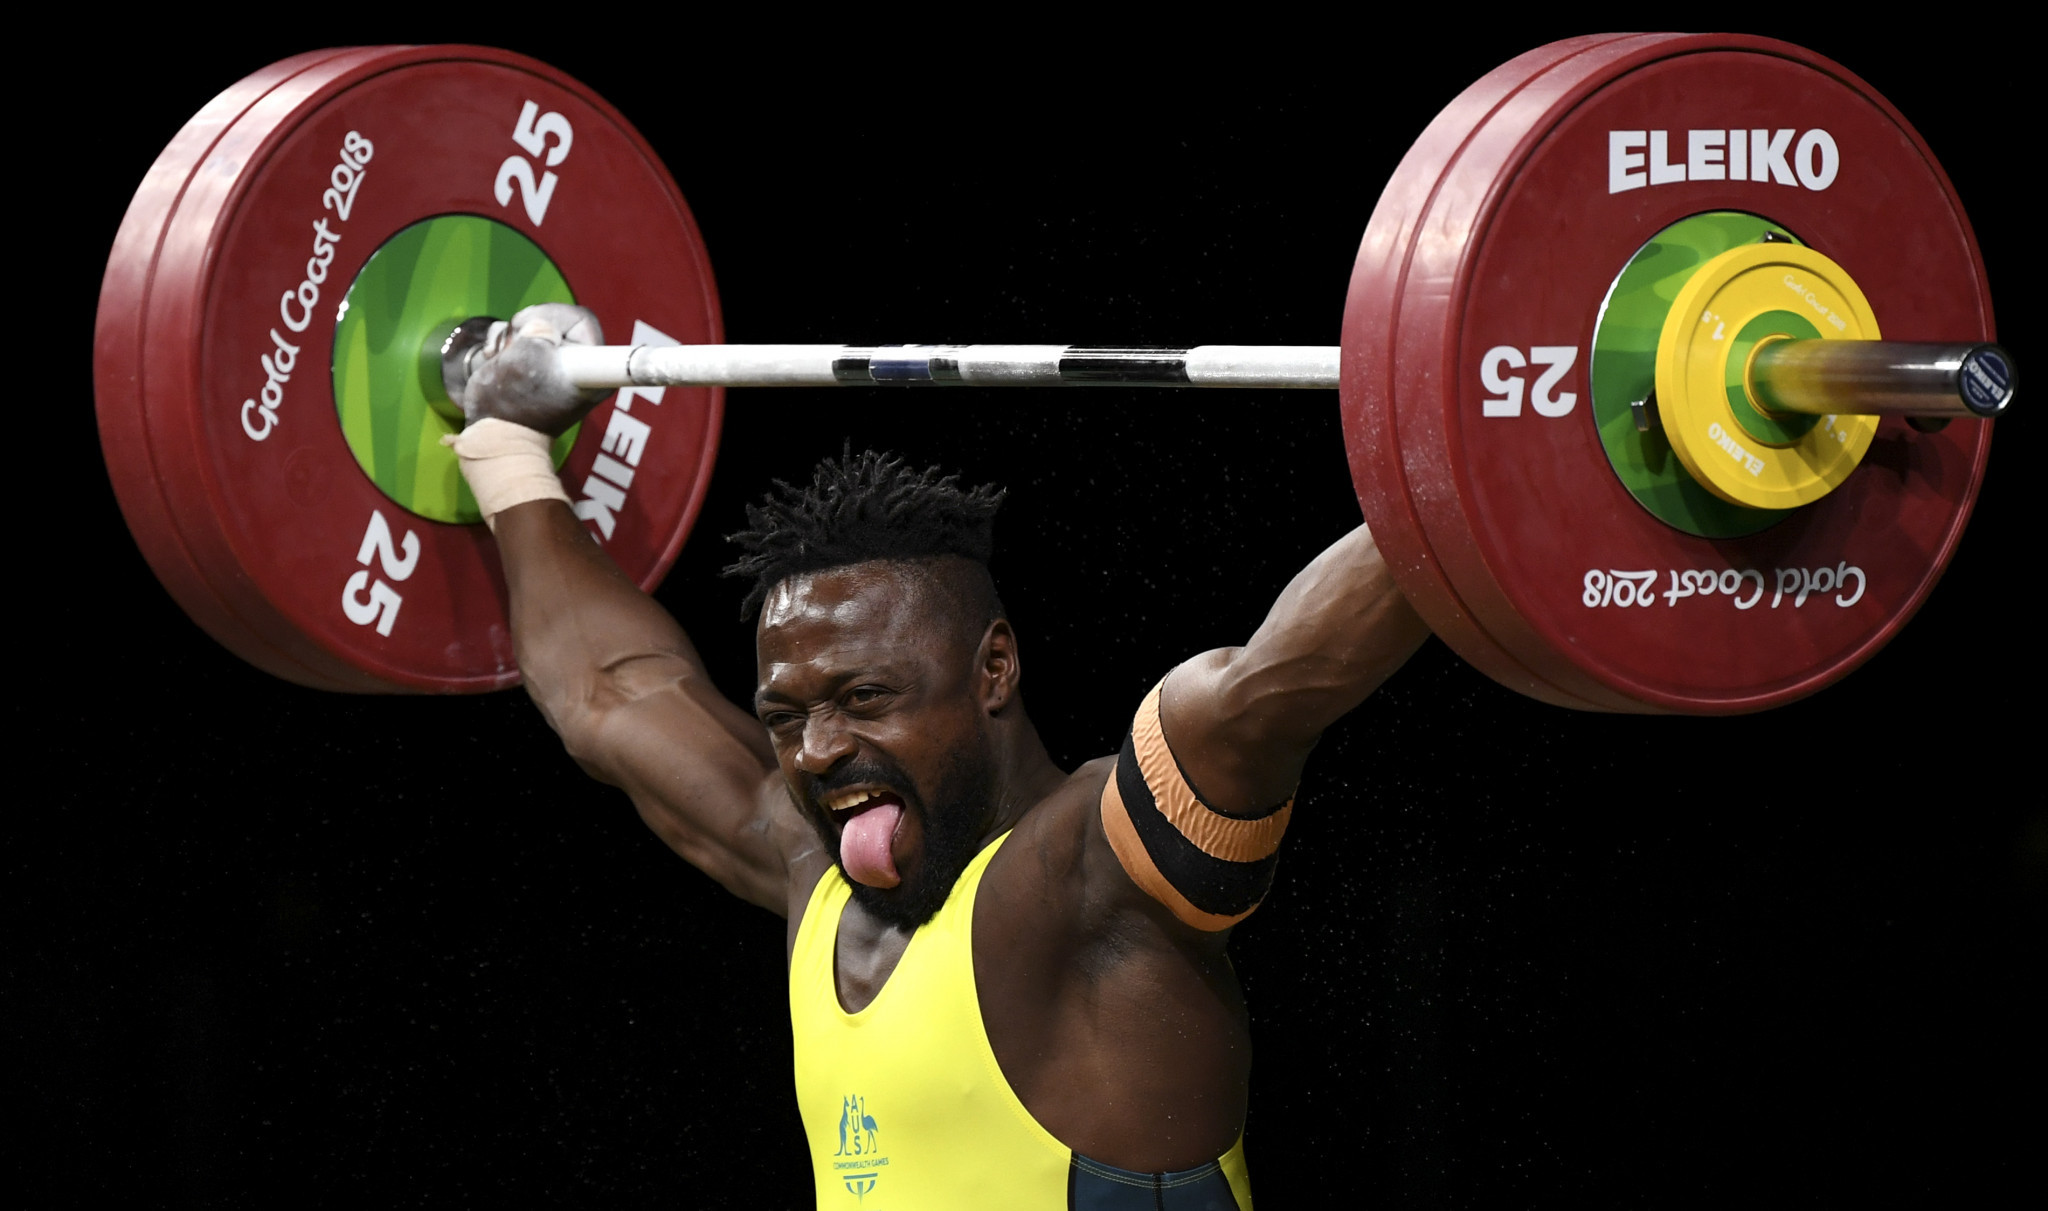 Francois Etoundi finished third in the men's 77kg event at Gold Coast 2018 ©Getty Images